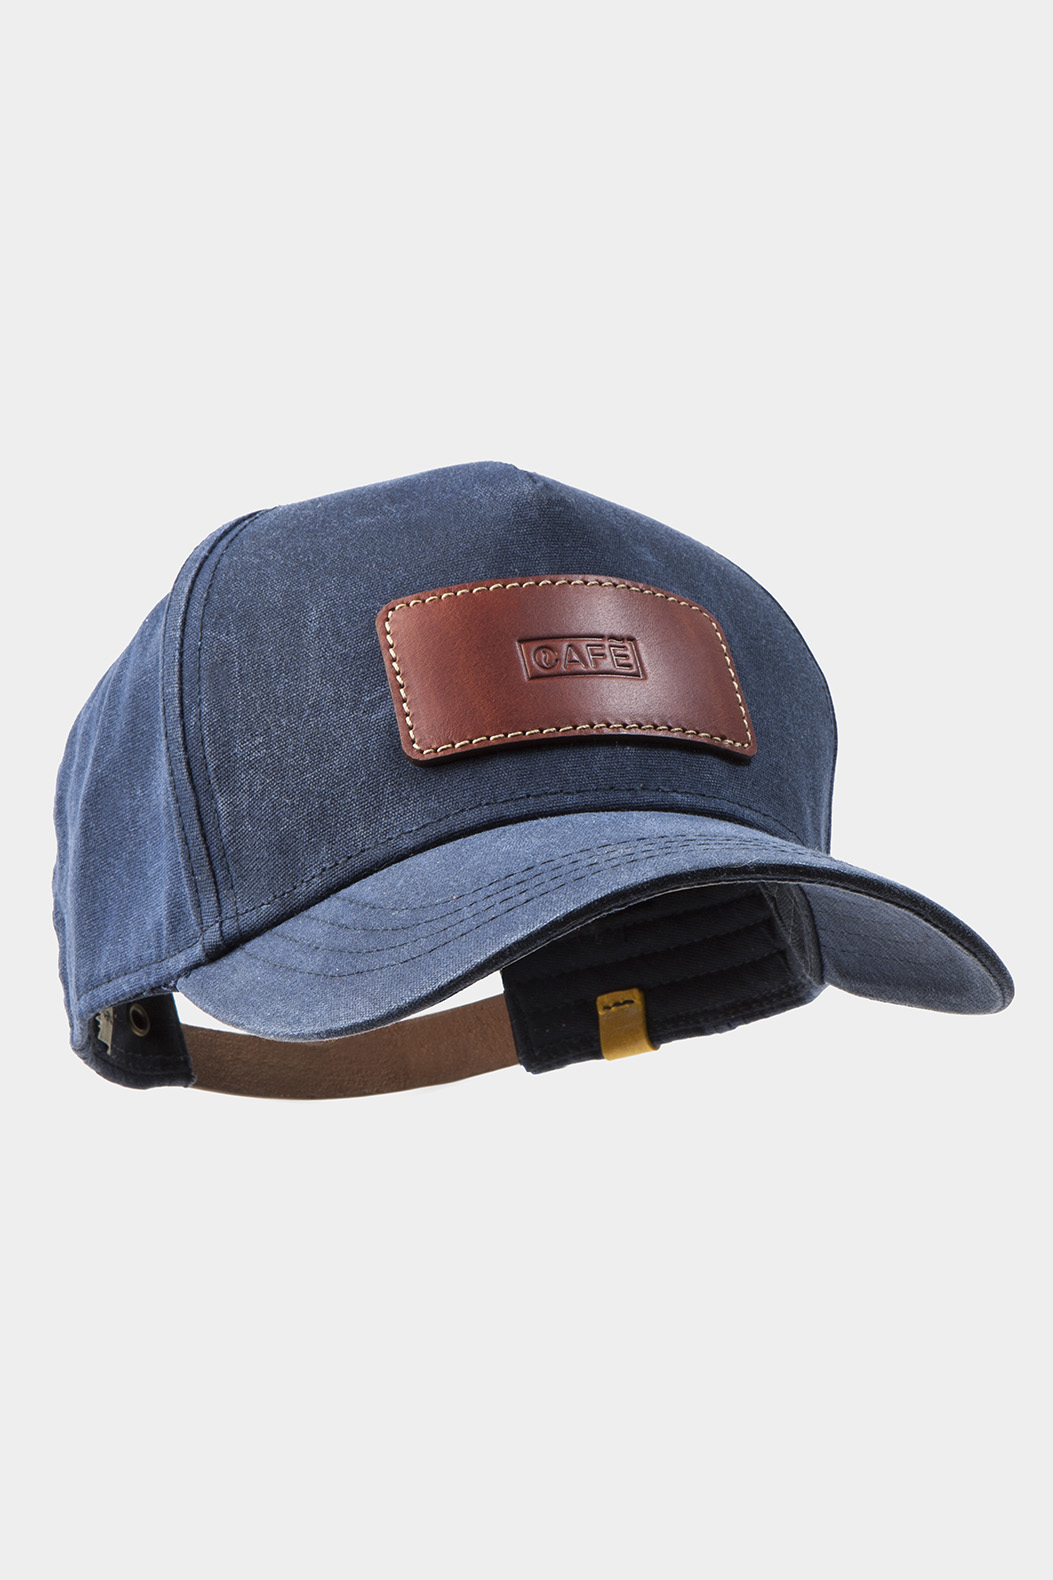 Blue cap with leather brown patch.